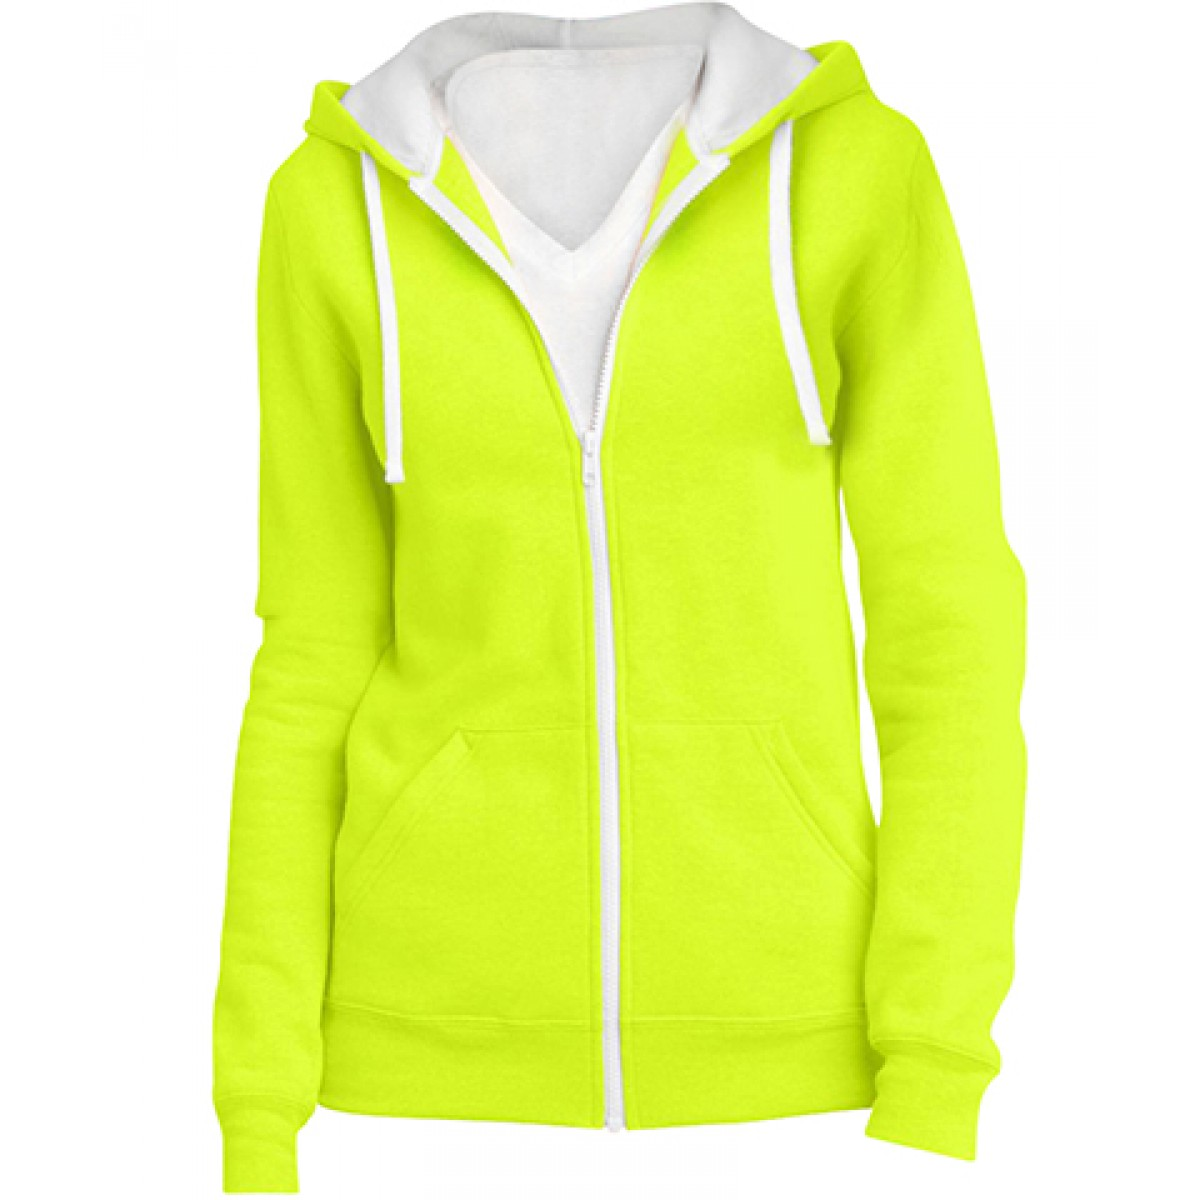 Juniors Full-Zip Hoodie-Safety Green-4XL